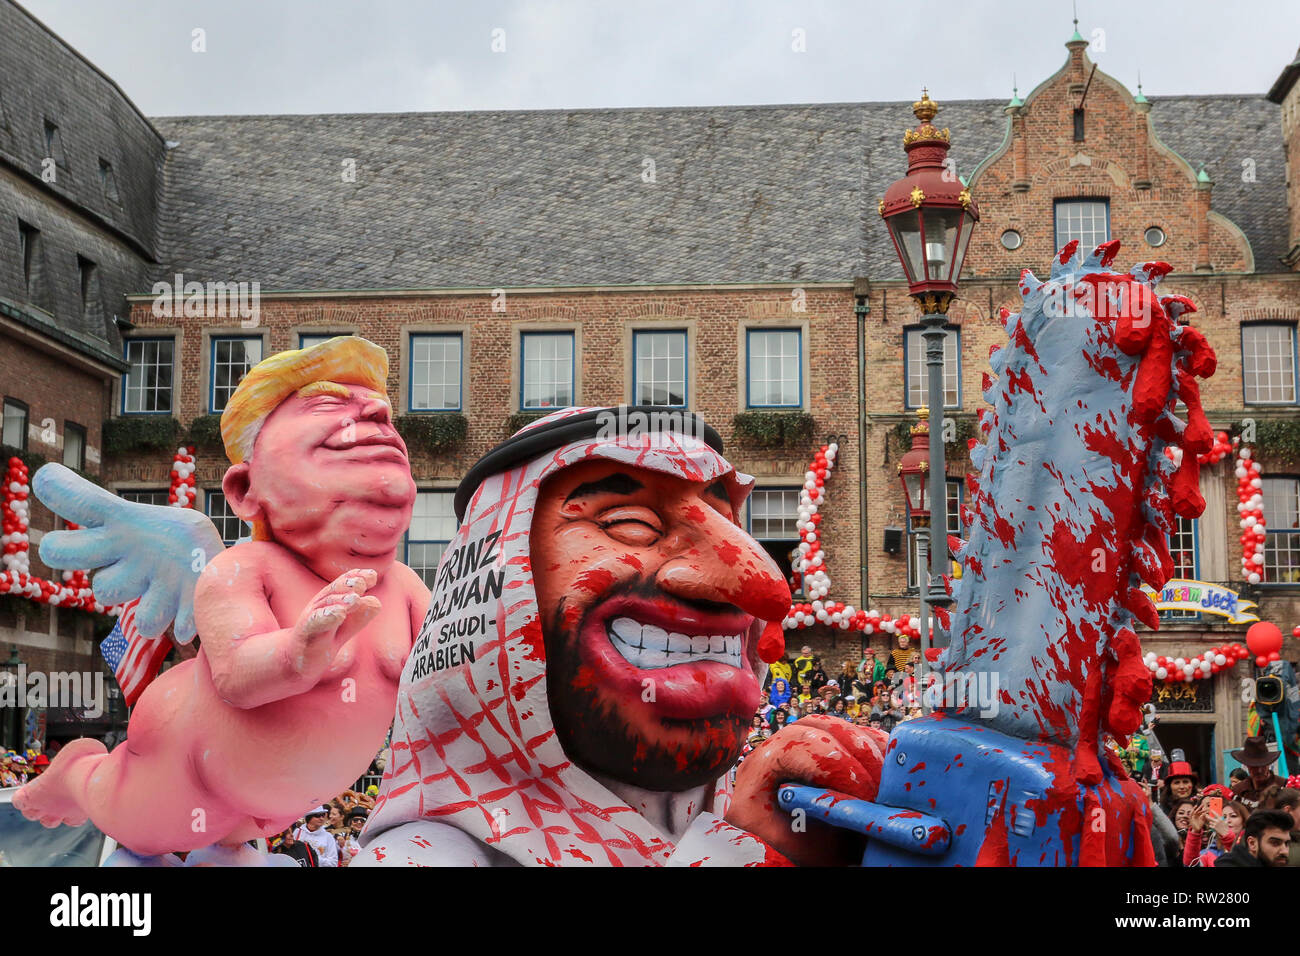 Dusseldorf, Germany. 4th February 2019. The wonderful annual carnival procession passing through the Rathaus Marktplatz in the centre of Dusseldorf. Credit: Ashley Greb/Alamy Live News - Stock Image